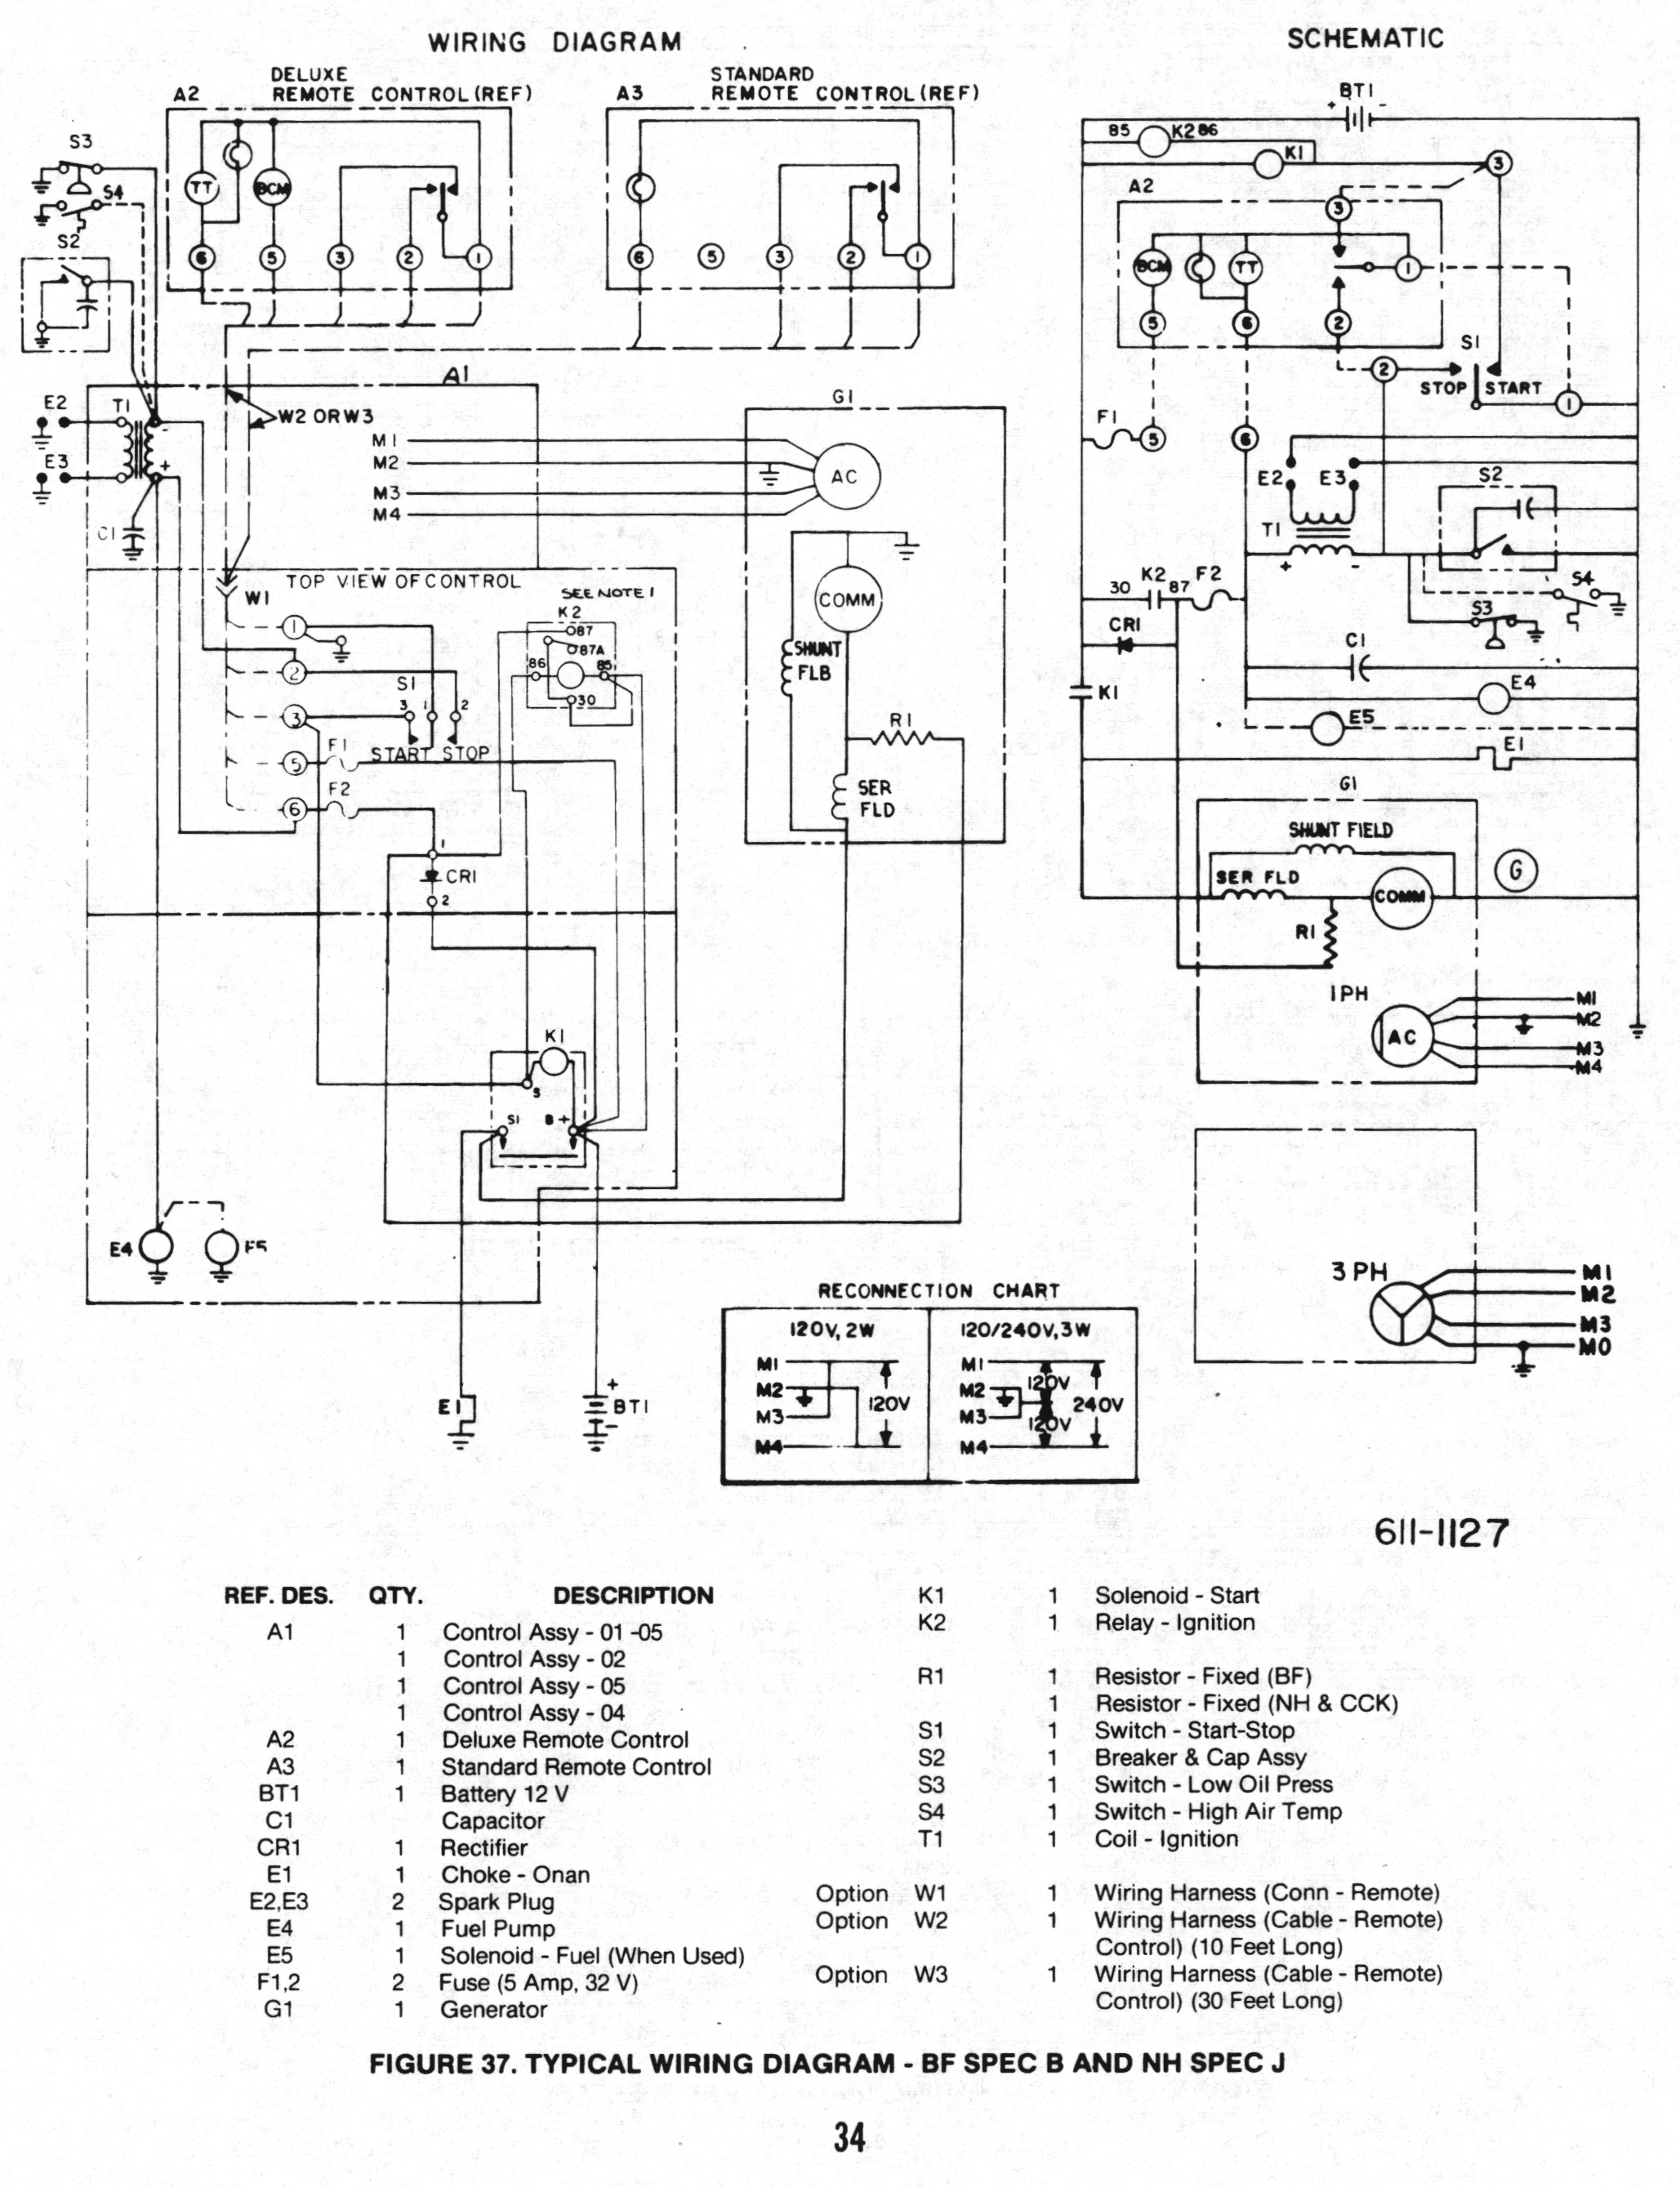 Generac Rv Generator Wiring Diagram In Addition 12 Volt Starter Switch On Manual Transfer For Onan Rh Janscooker Com